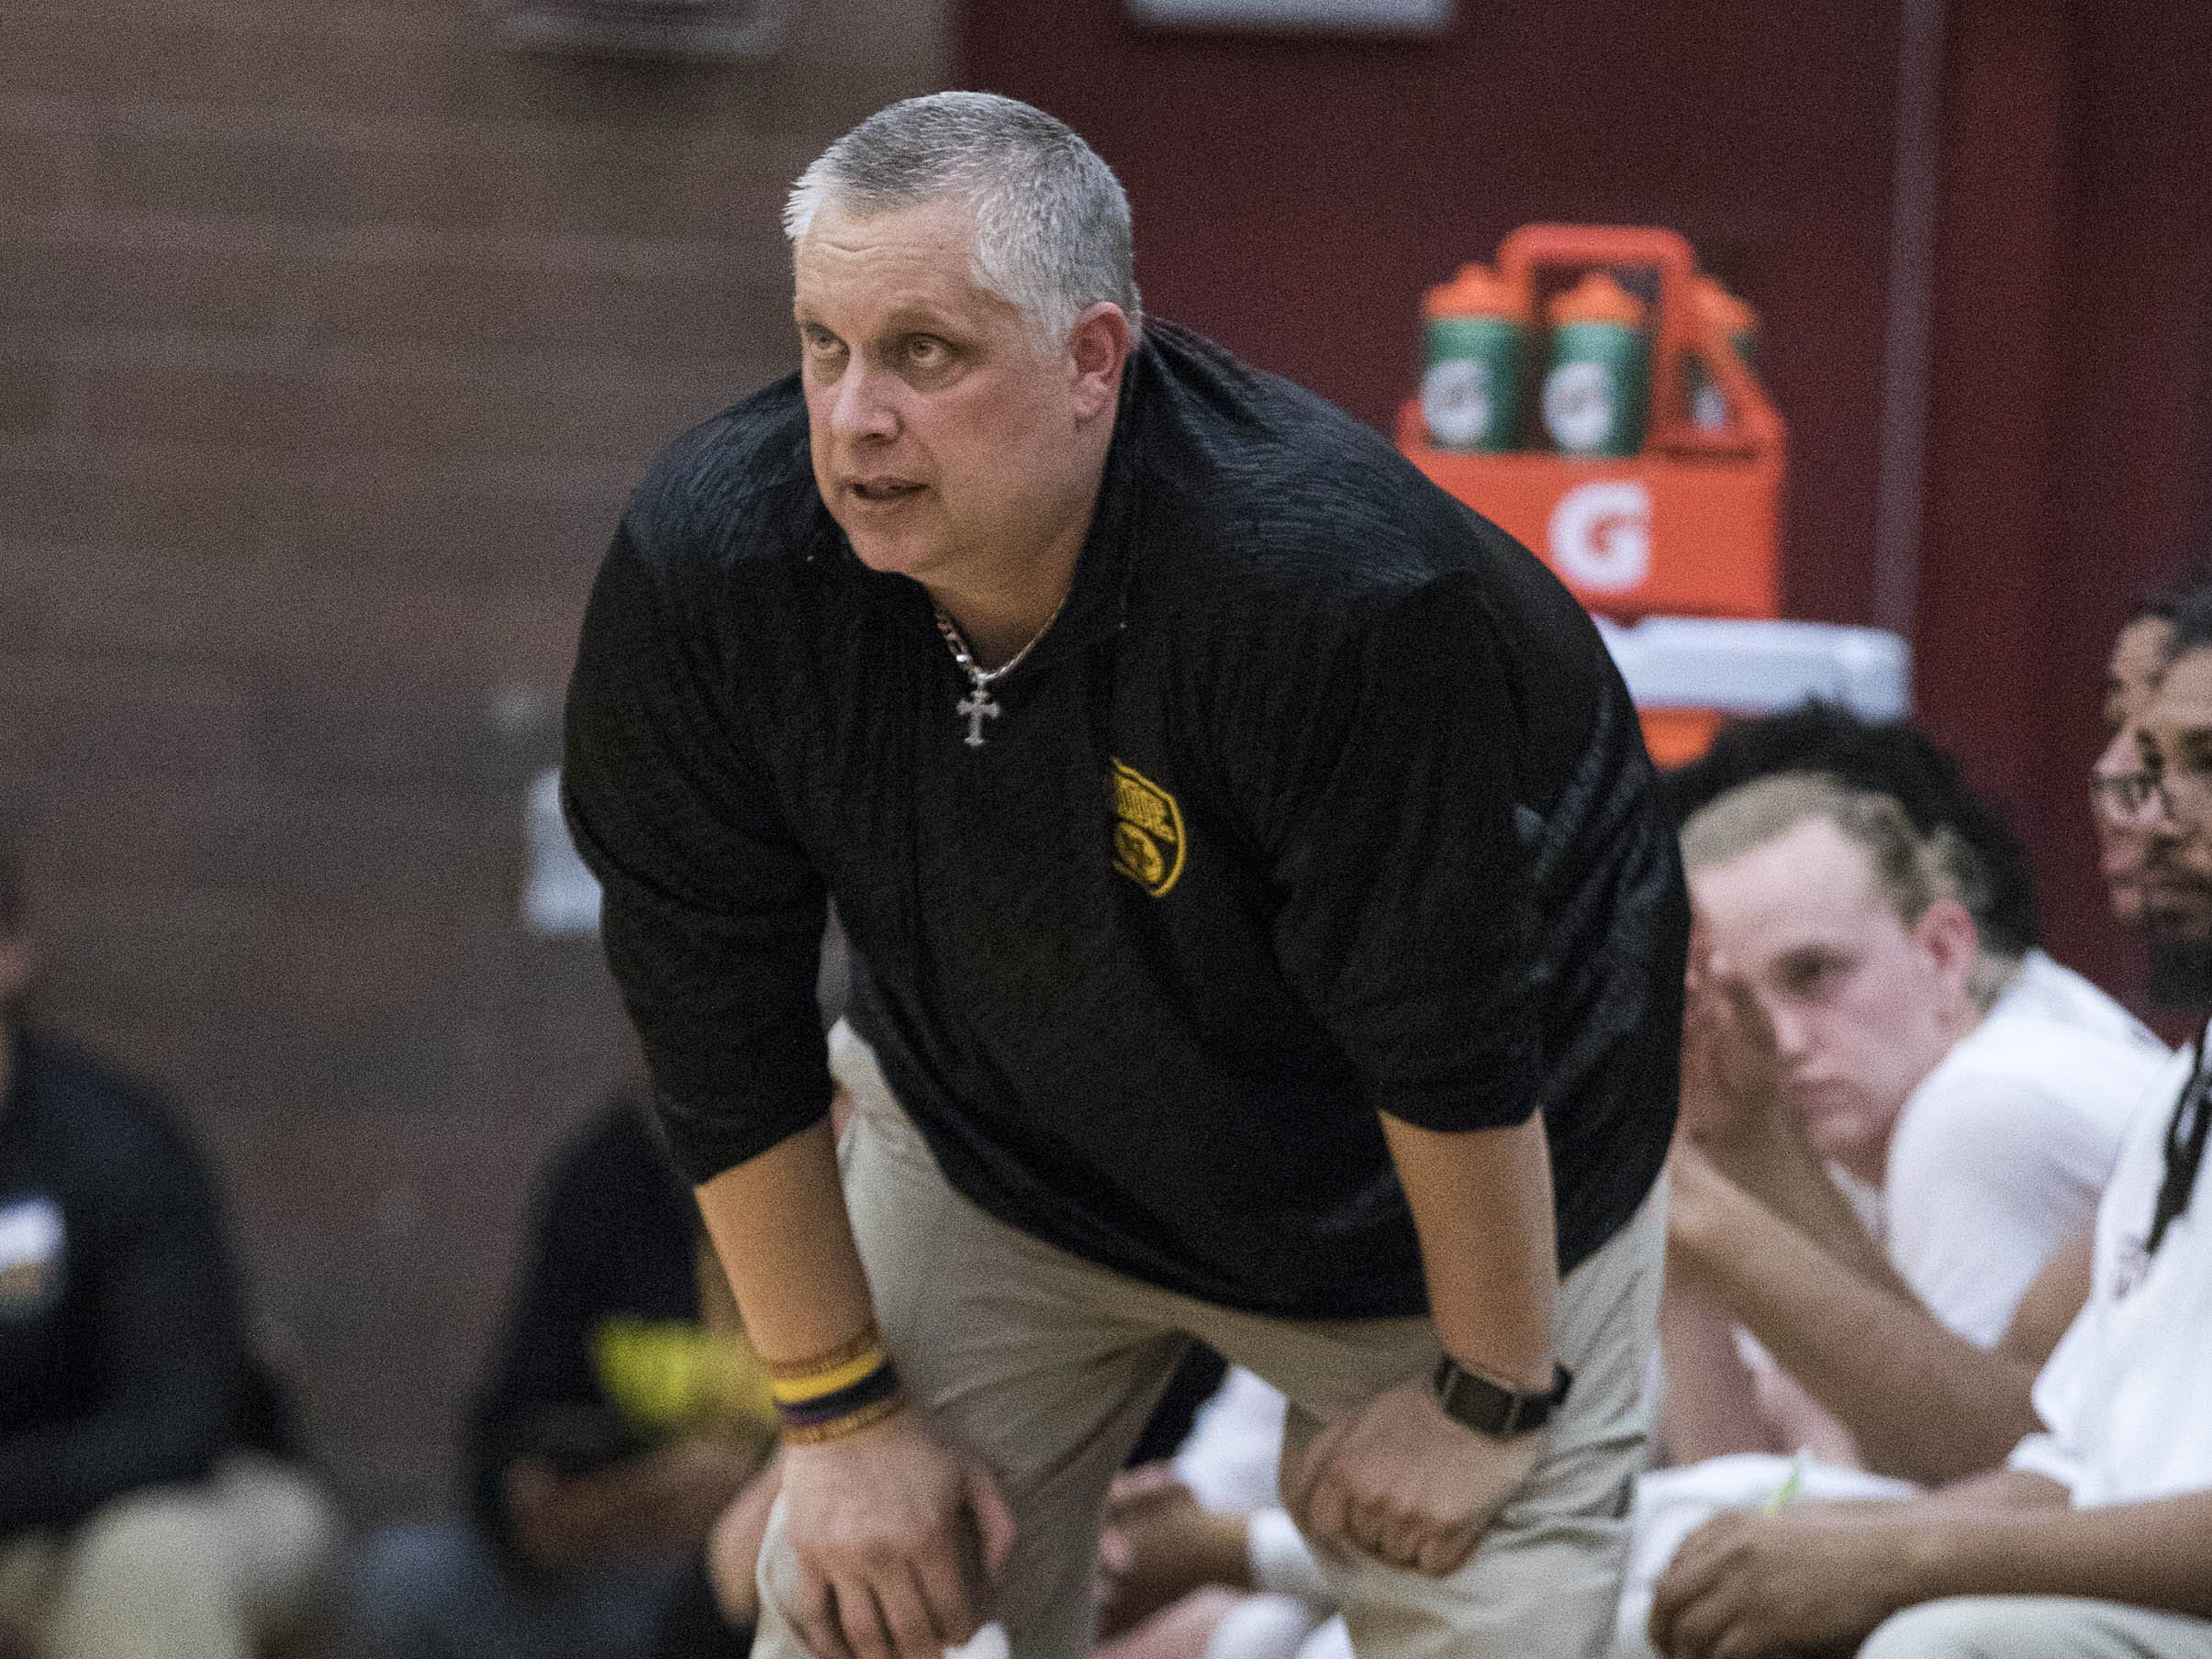 Mountain Pointe coach Kirk FauskeÊwatches his team play defense against Desert Vista's during their game in Phoenix on Tuesday, Jan. 29.